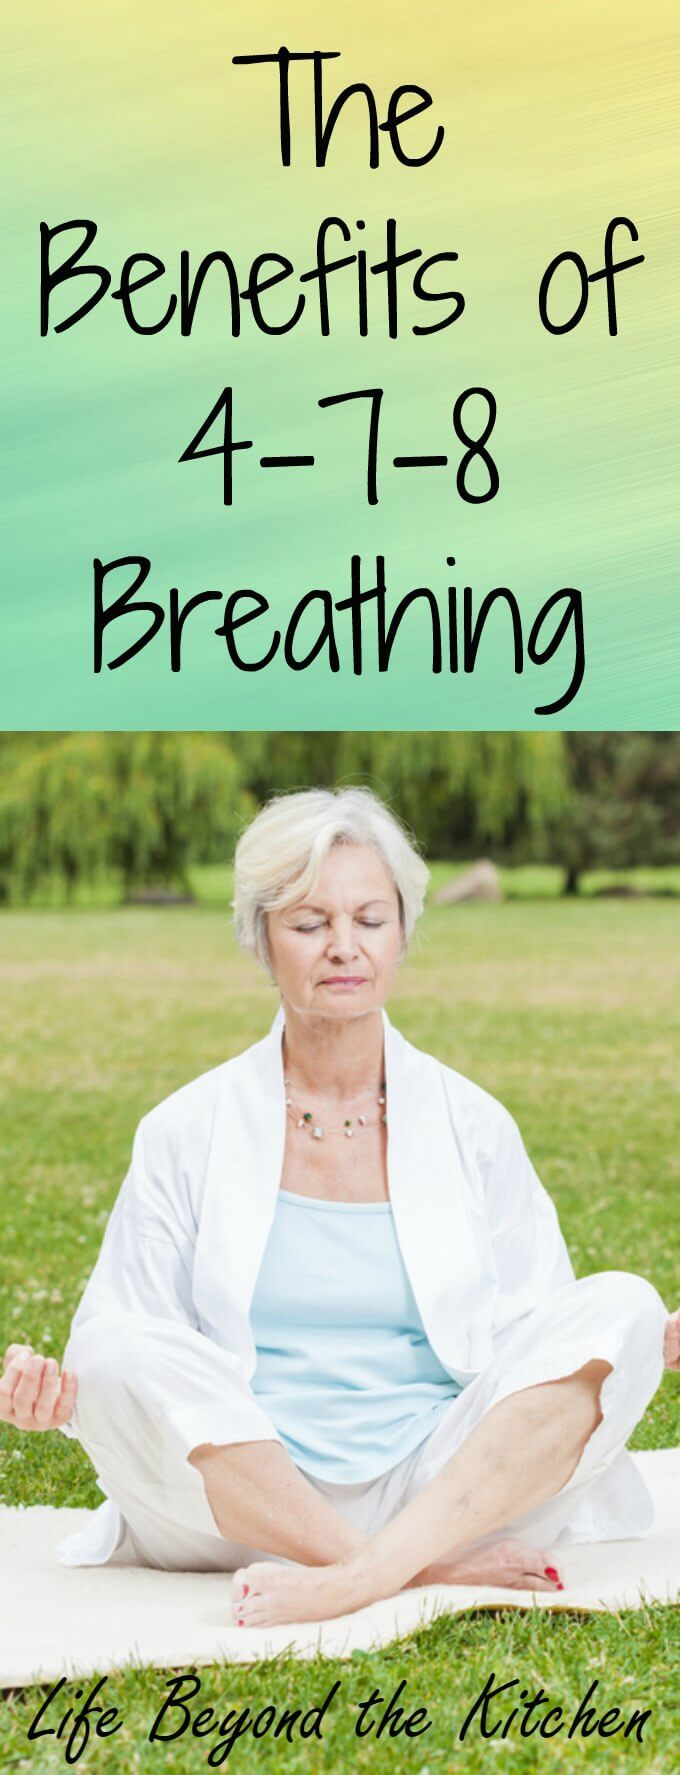 The Benefits of 4-7-8 Breathing ~ Life Beyond the Kitchen